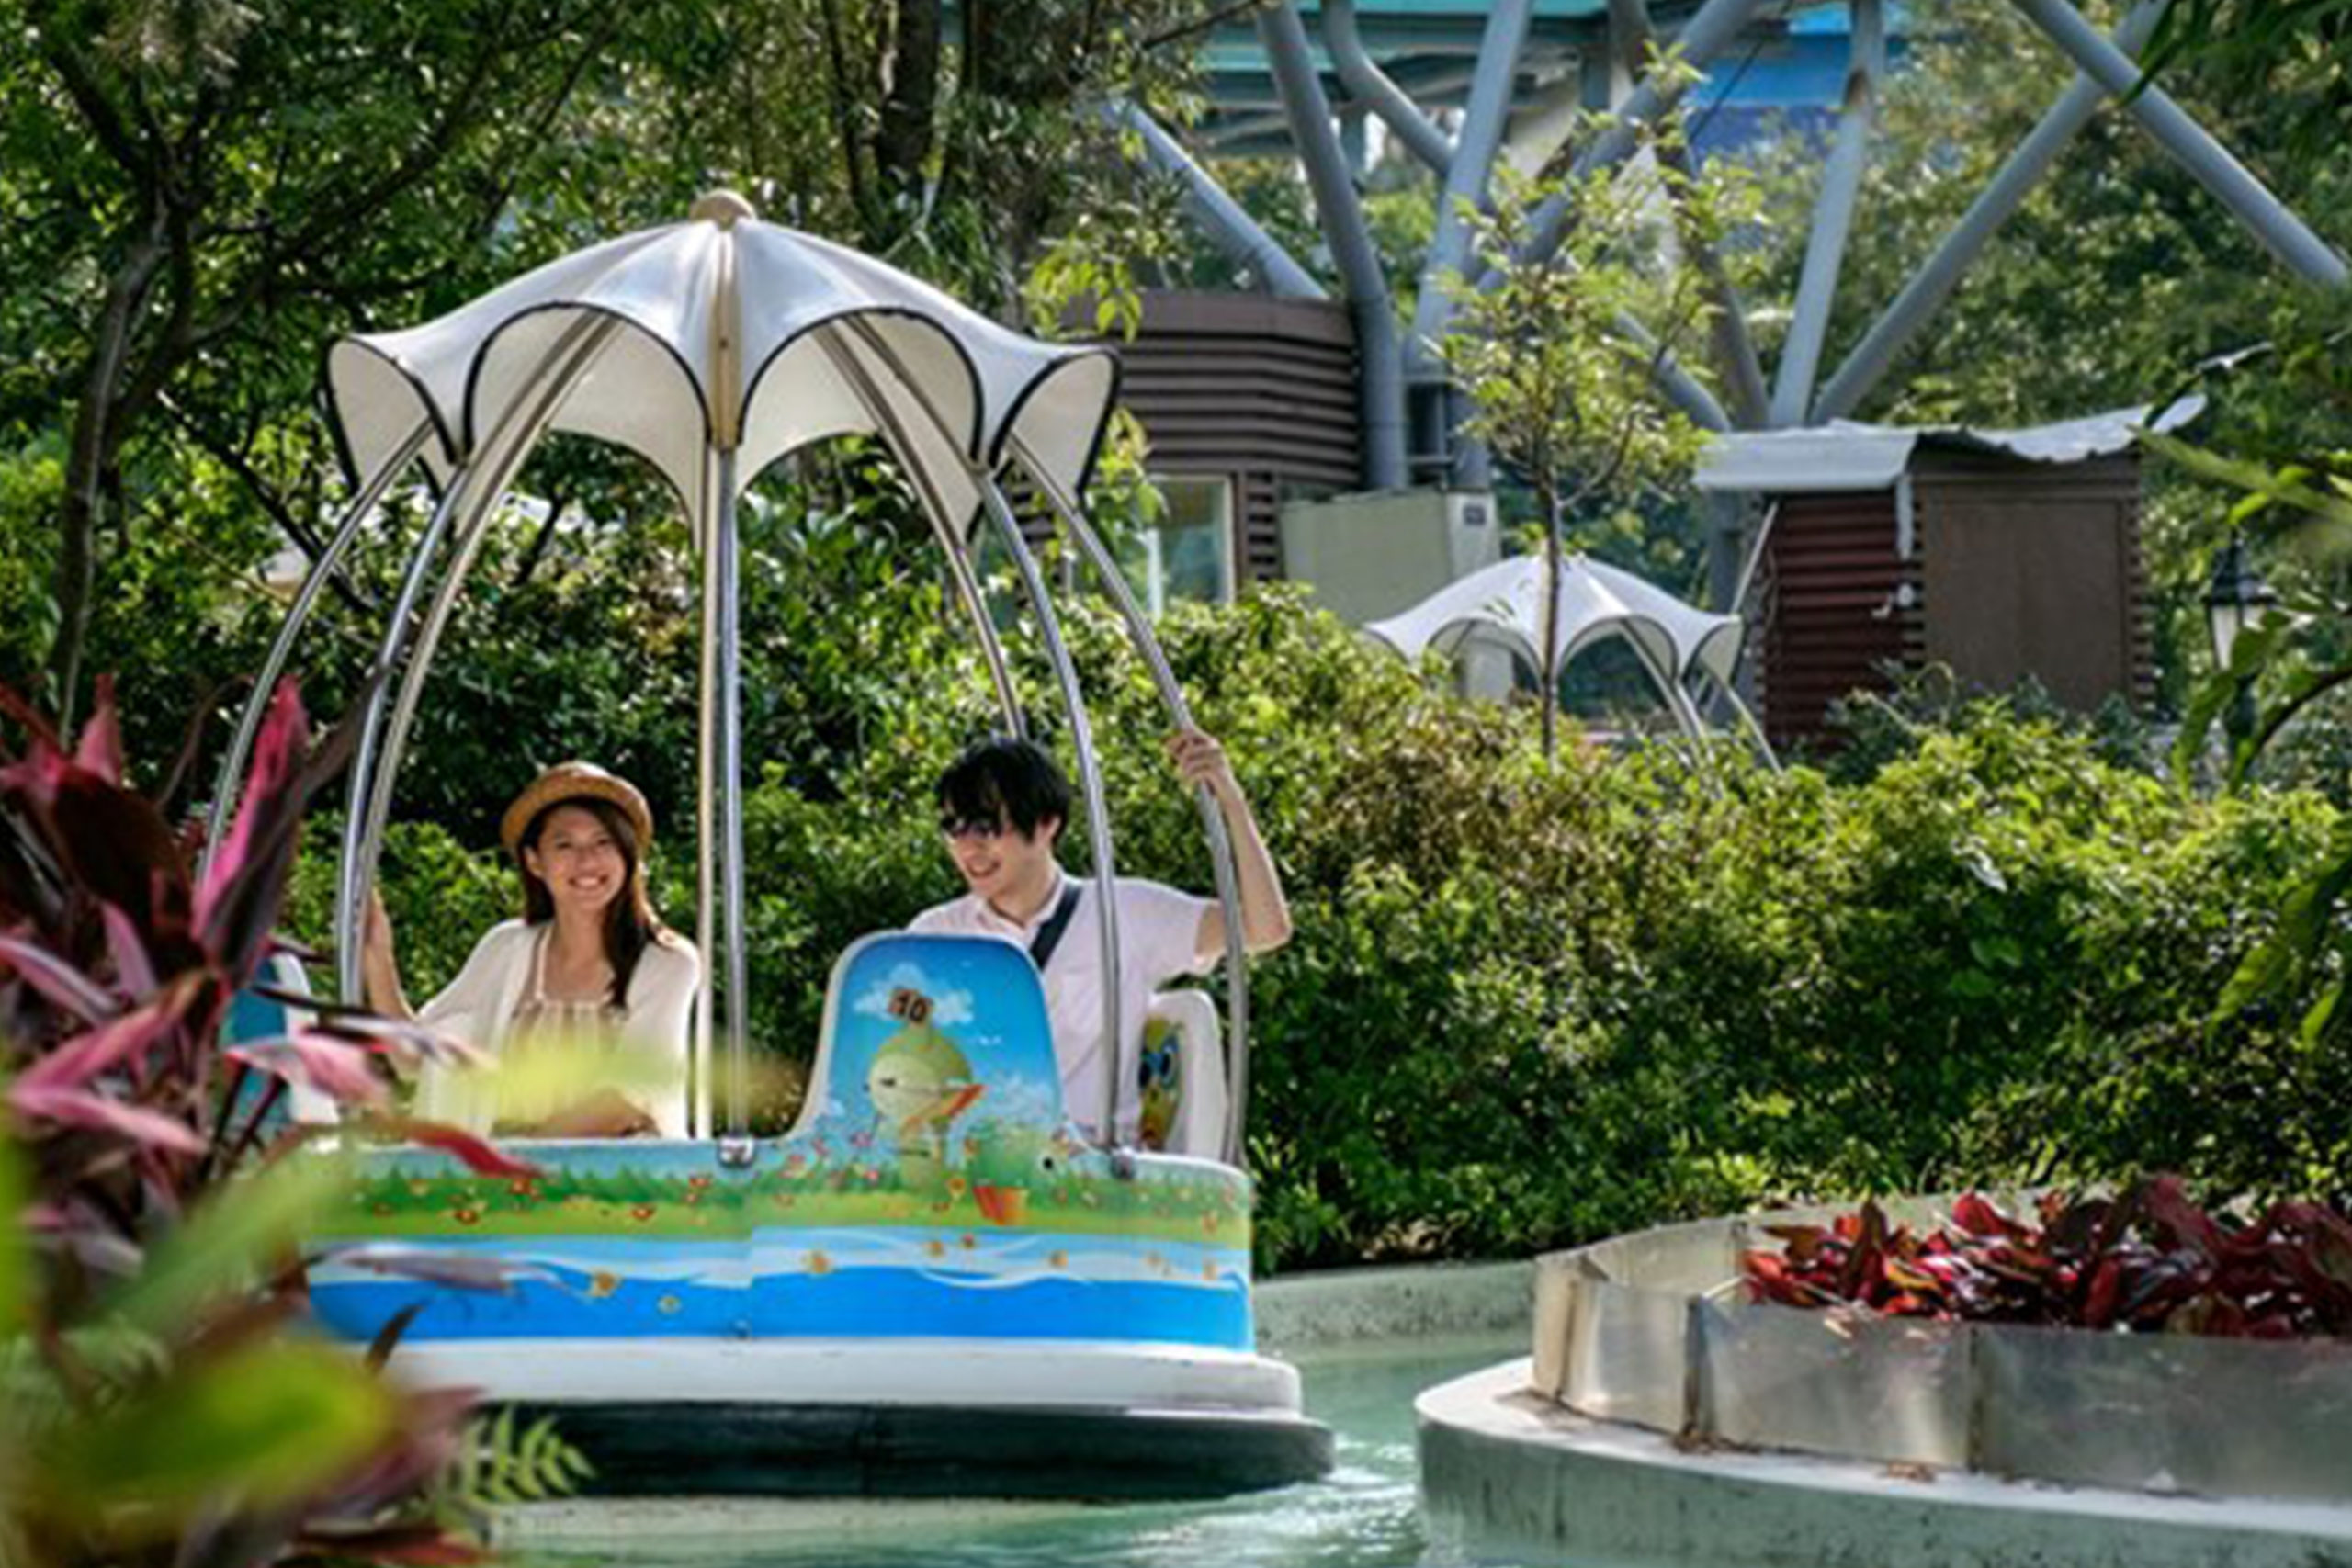 Interlink New Ride : Spin Boat Garden Boats at Lihpao Land 3